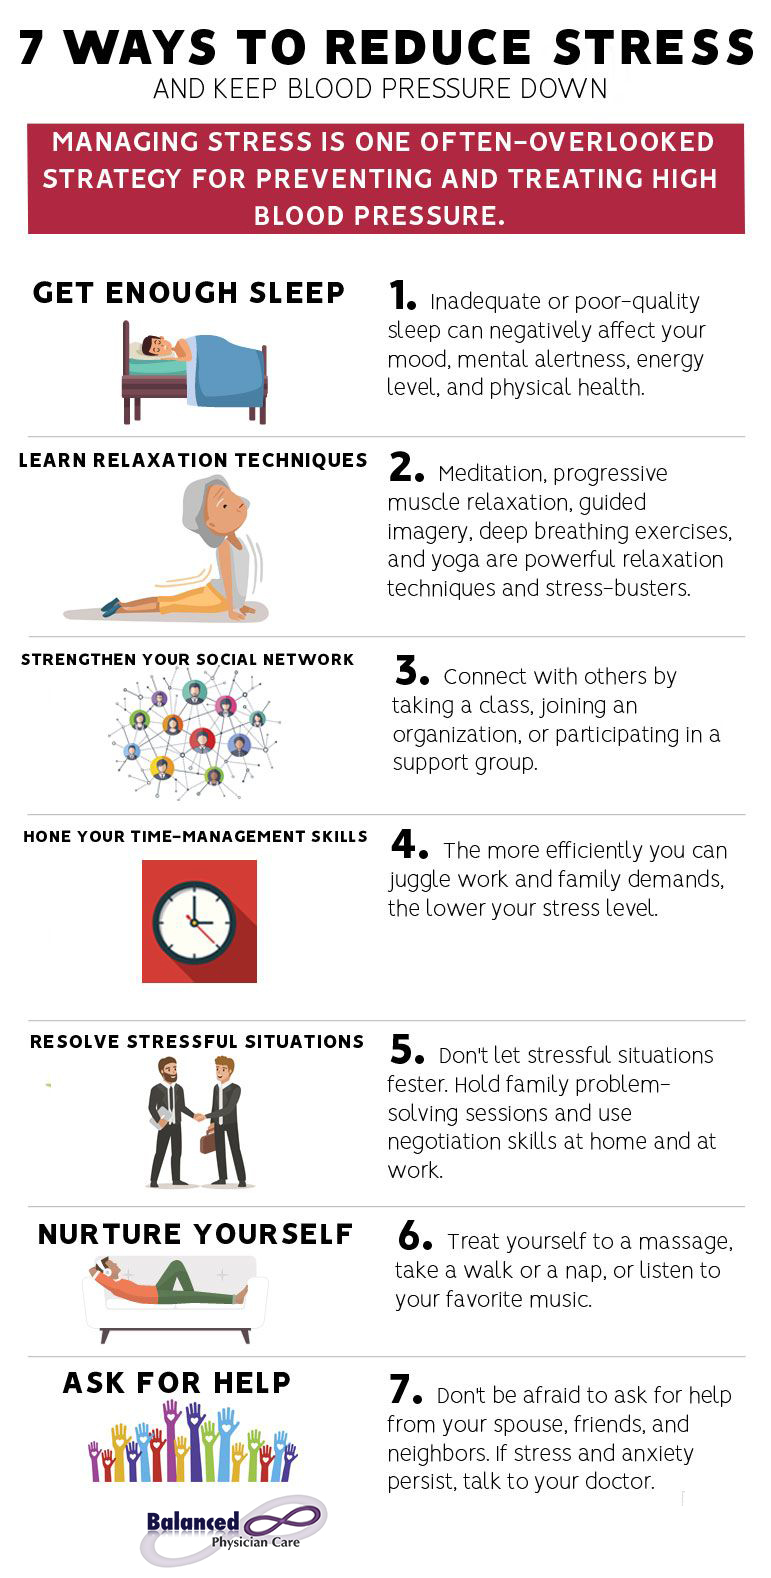 7 Ways to Reduce Stress_logo